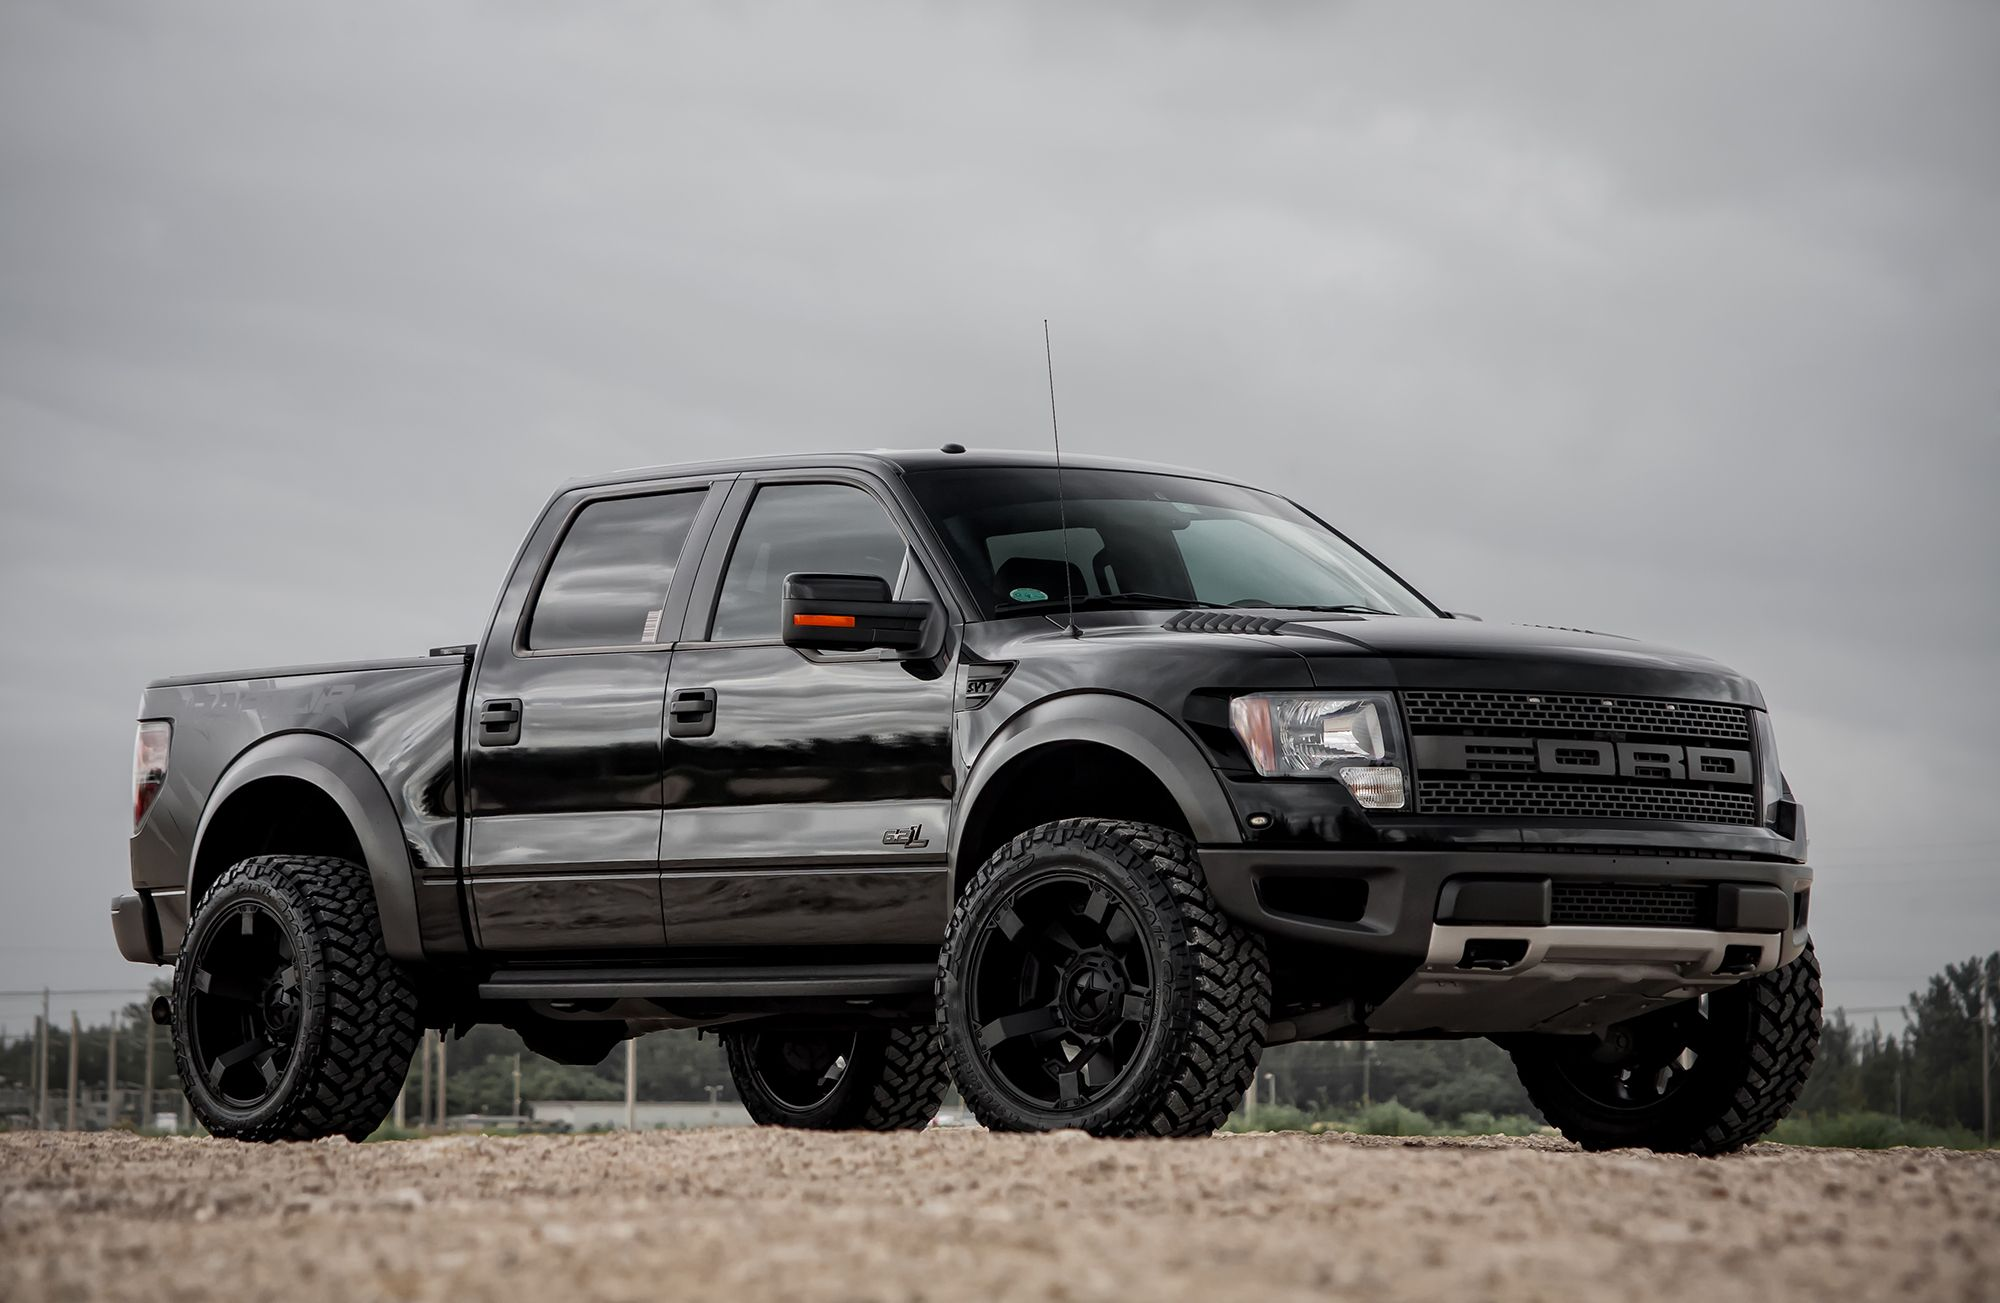 2015 ford raptor review and price the awesome pickup truck like 2015 ford raptor will